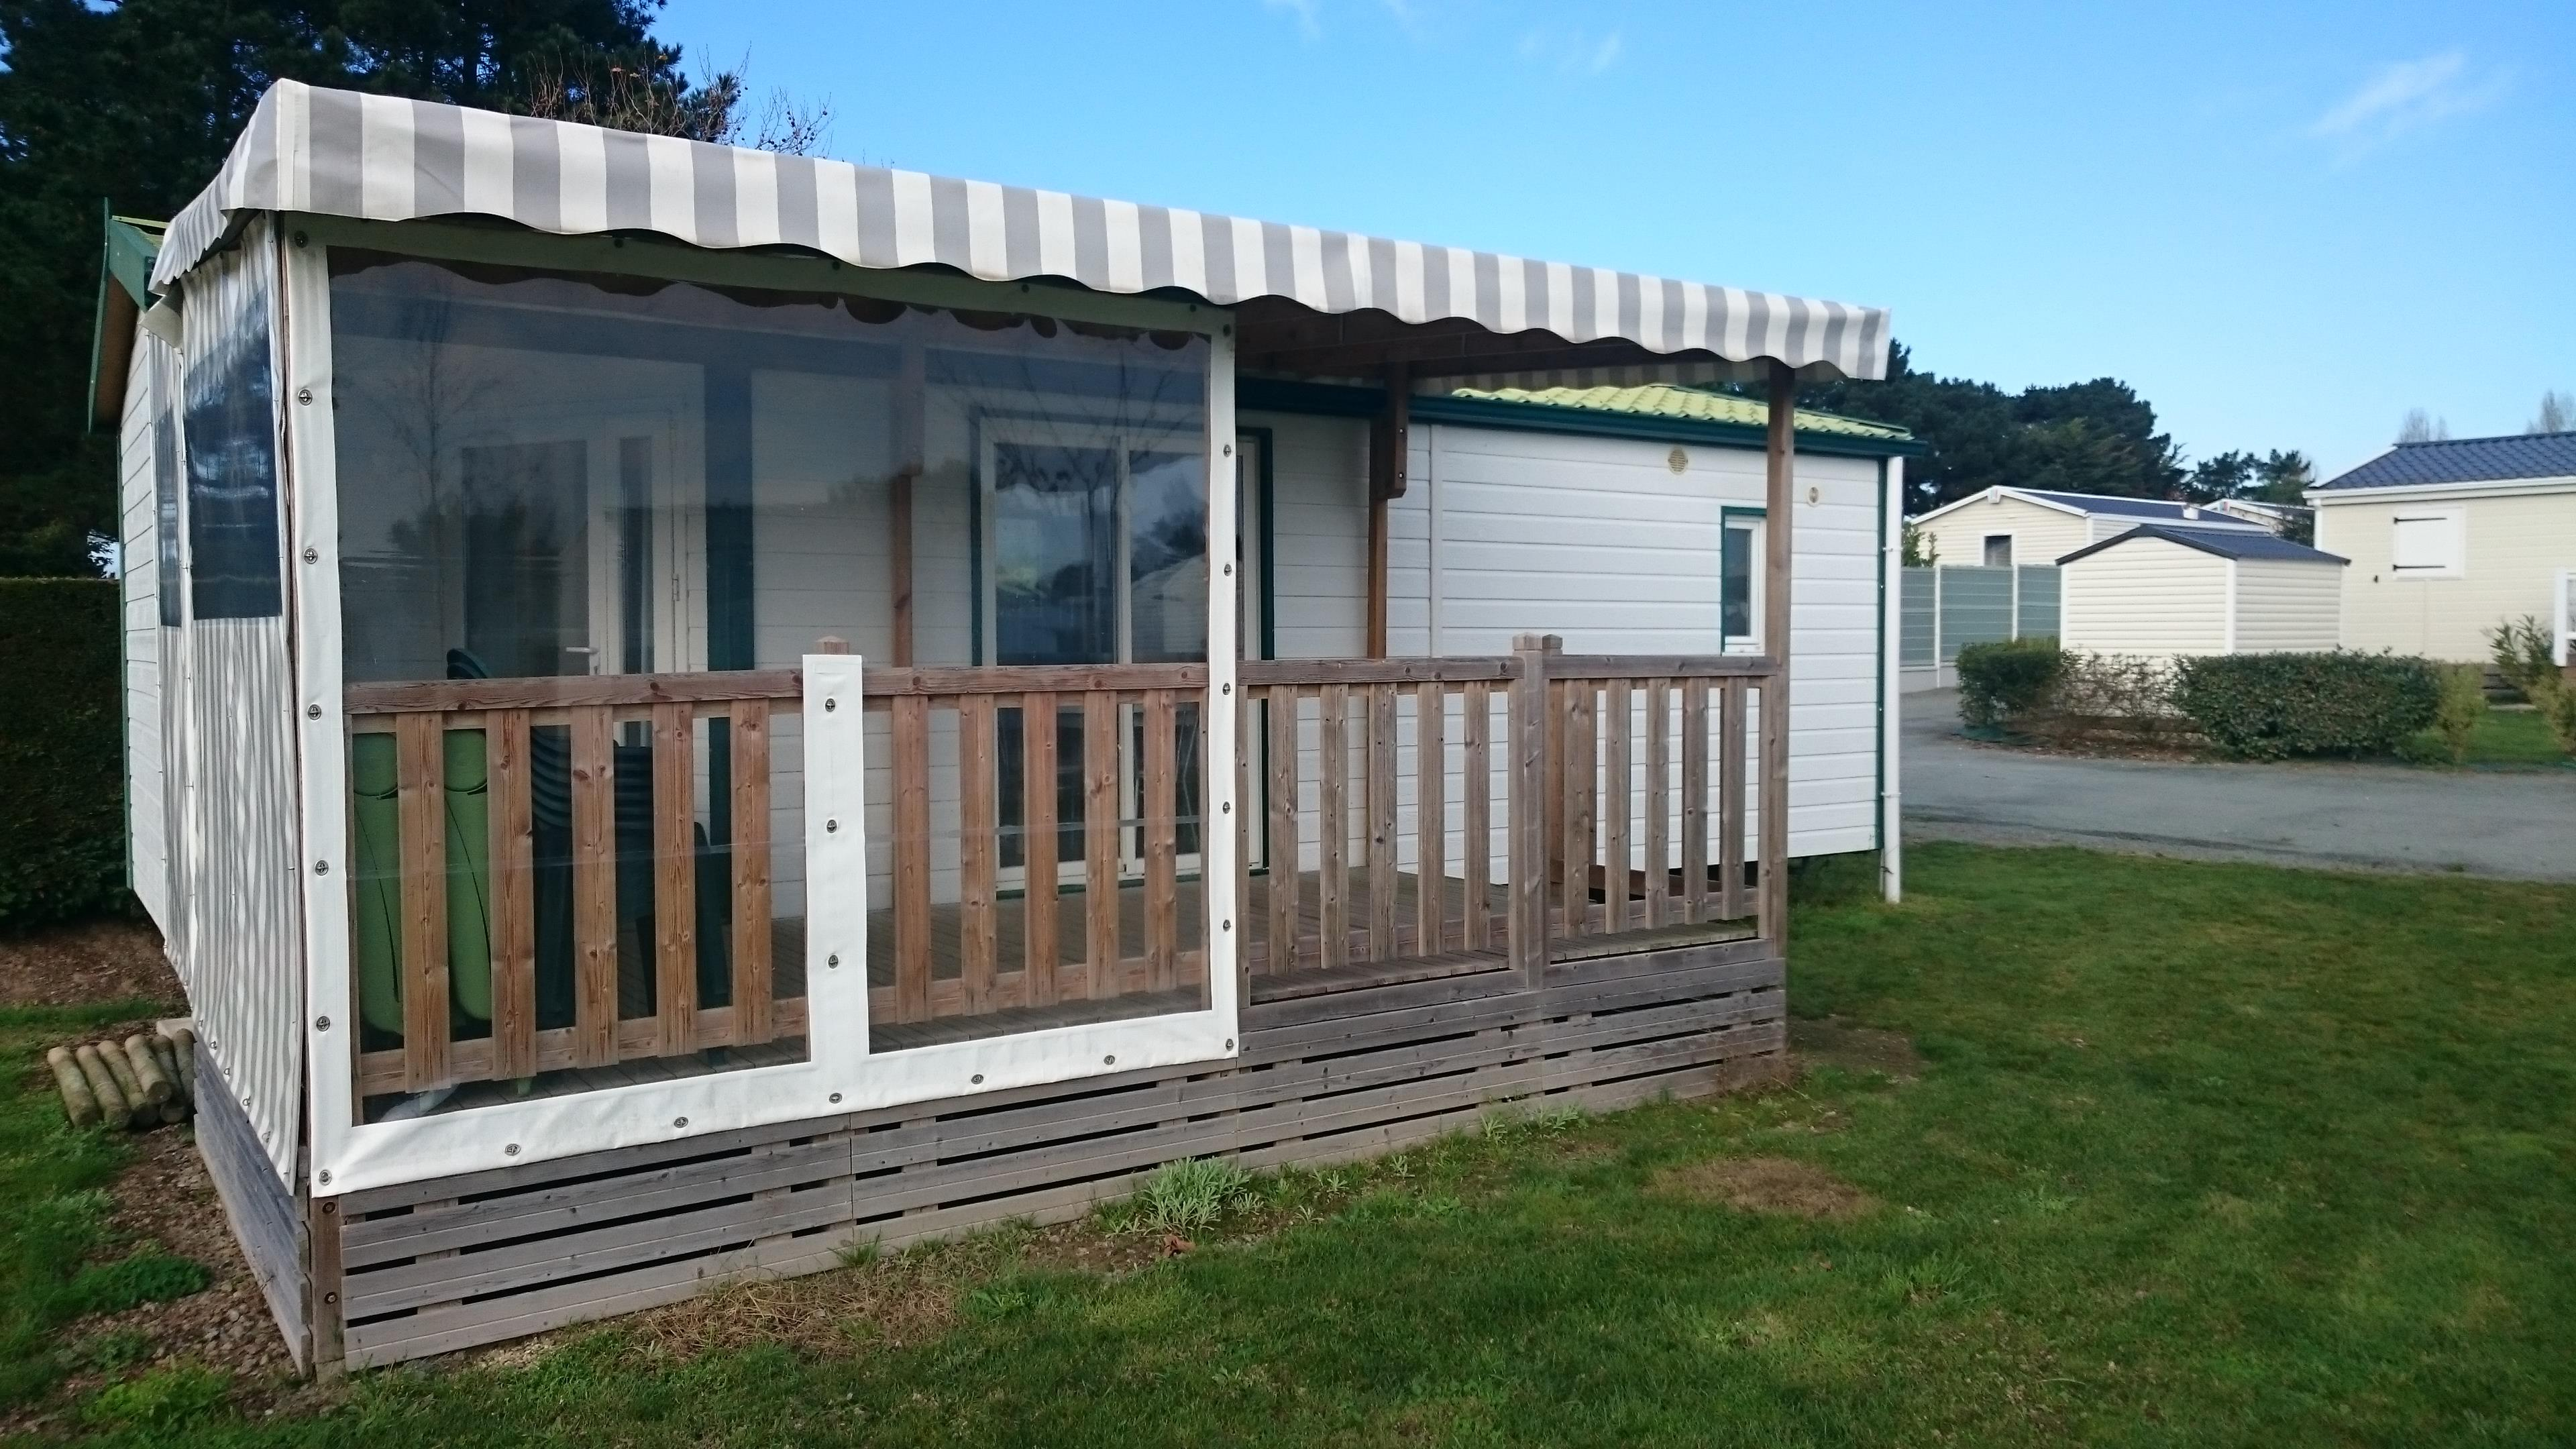 Mobil home Confort 2 rooms, 35m² with covered and closed terrace